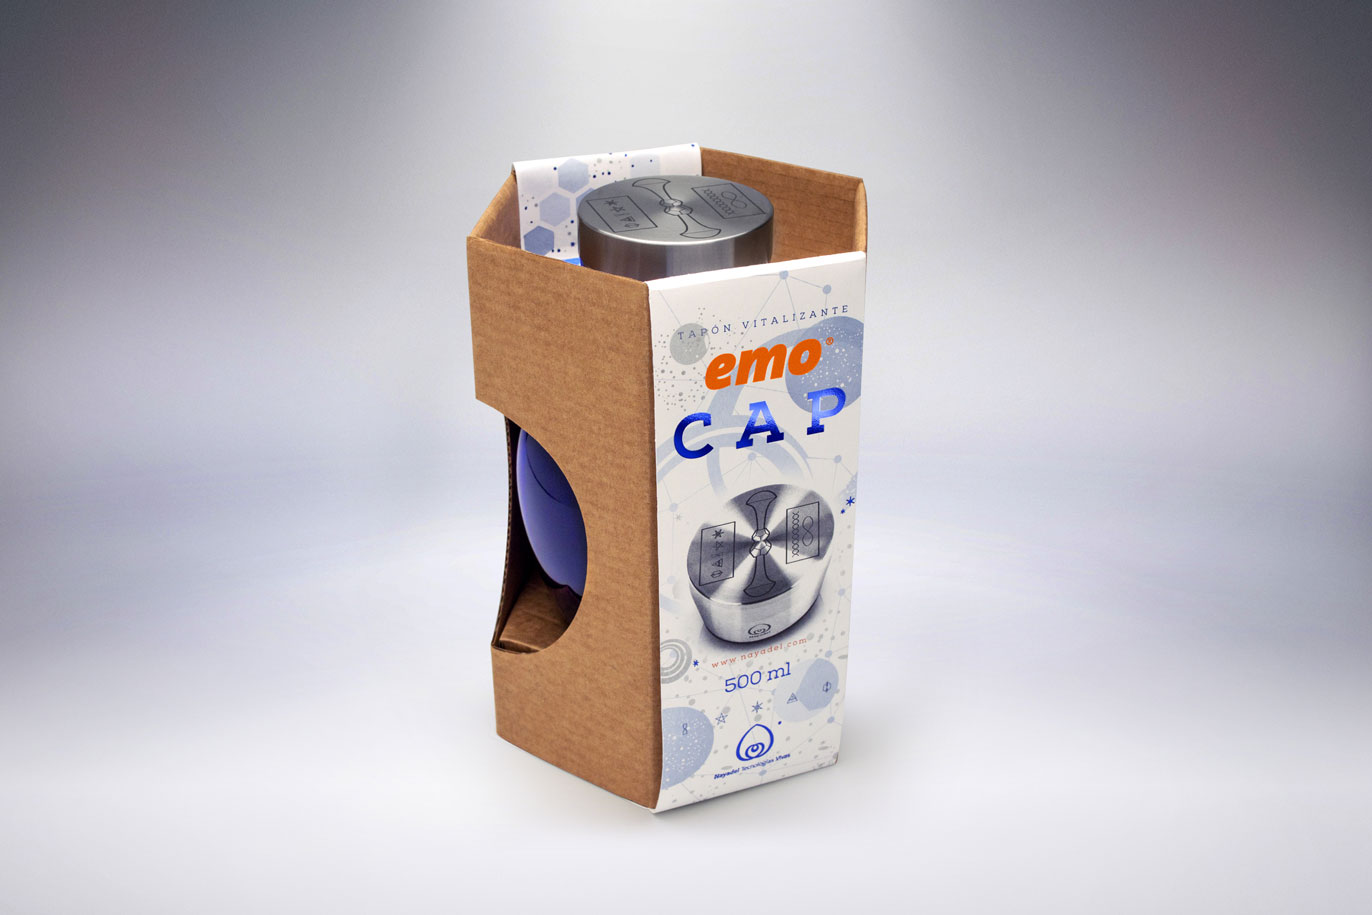 Emo Cap eco-packaging graphic design visual communication Vibranding